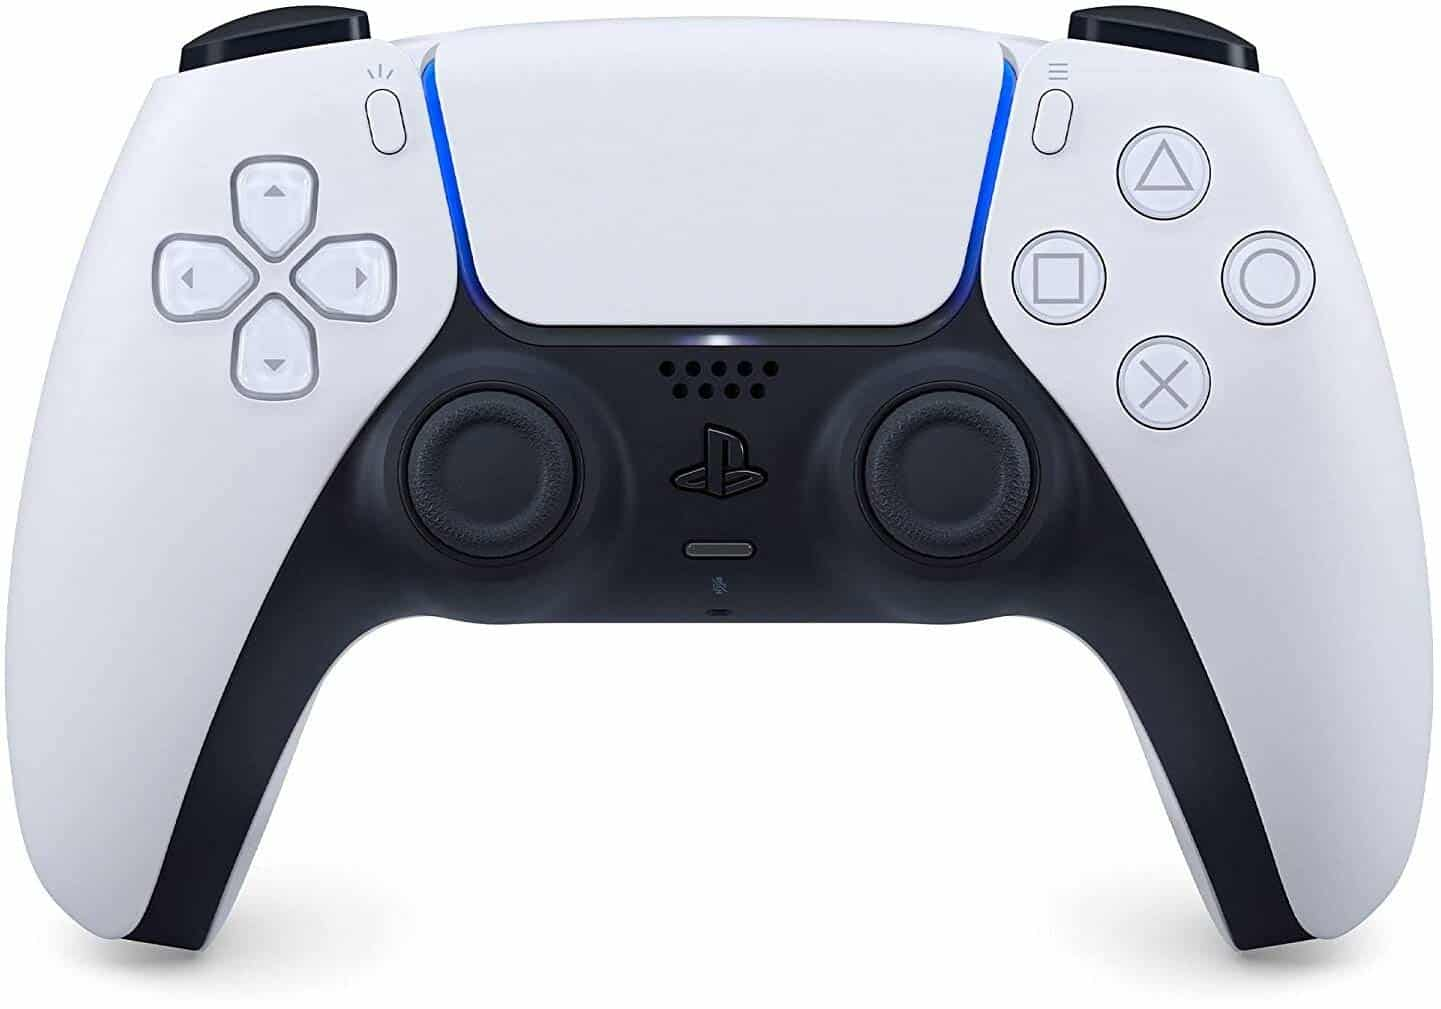 Playstation - best PS5 controller for FPS